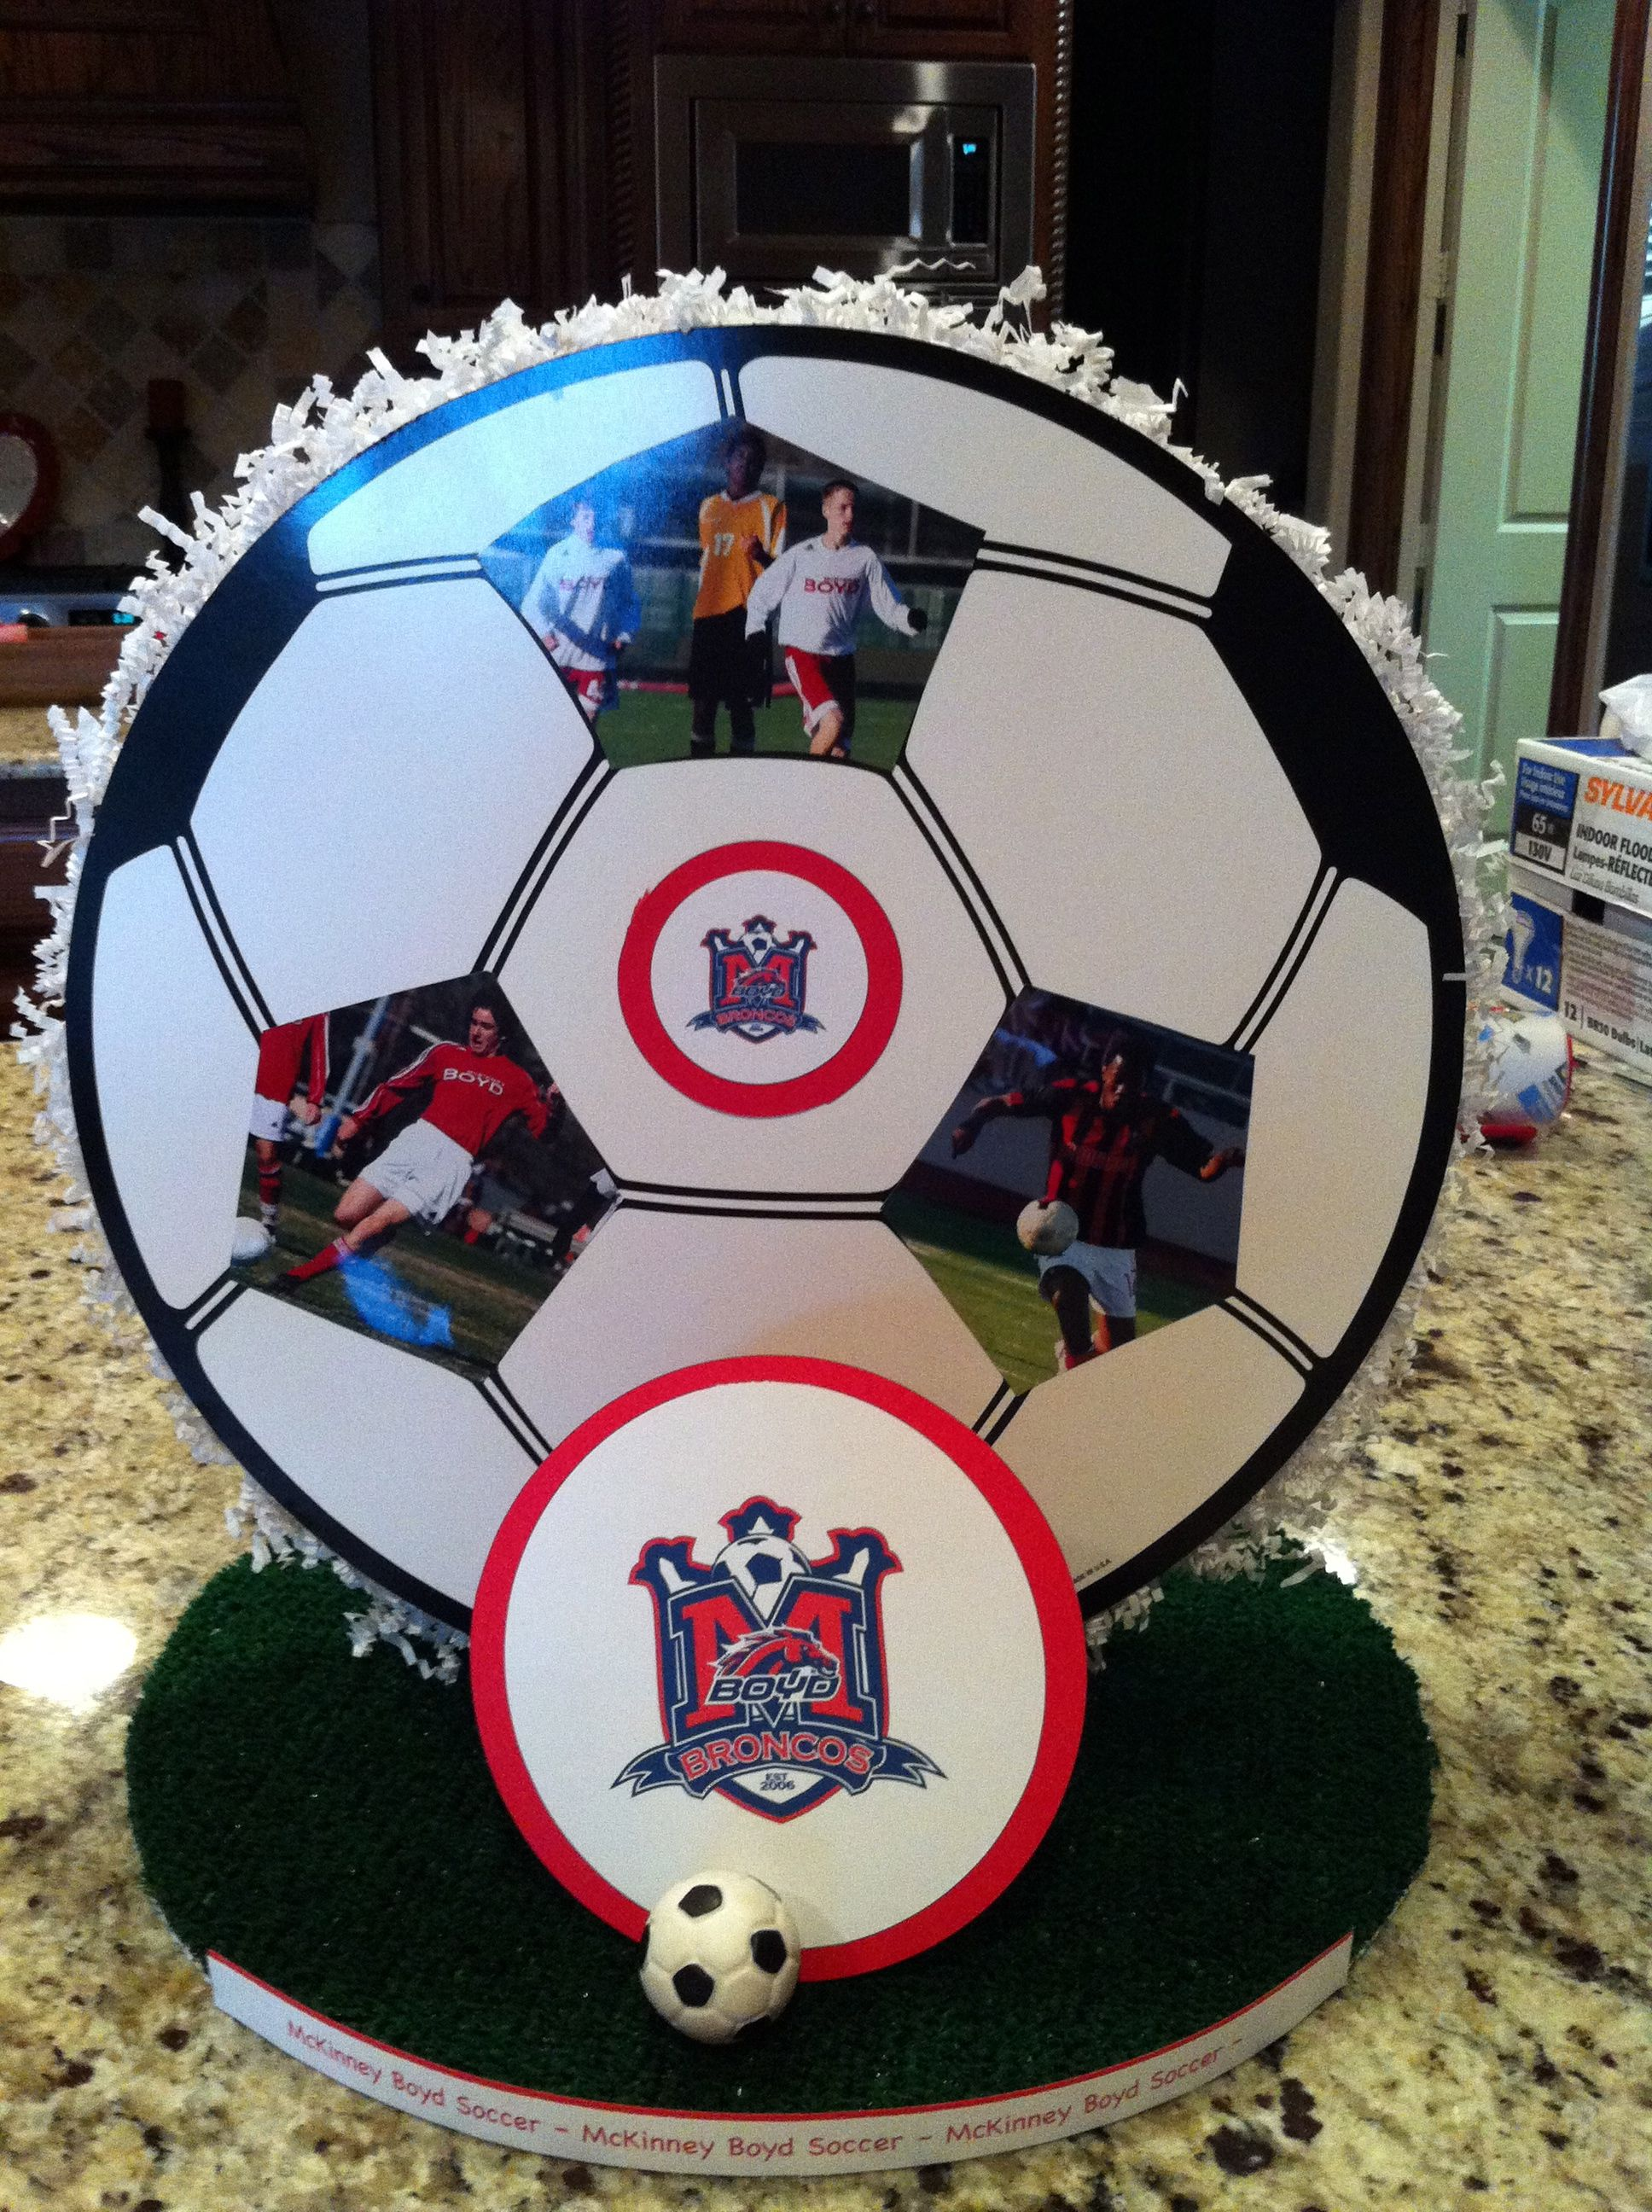 Soccer Centerpieces For Banquet Double Sided With All The Players Pictures Varsity Junior Varsity Soccer Centerpieces Soccer Birthday Parties Soccer Banquet